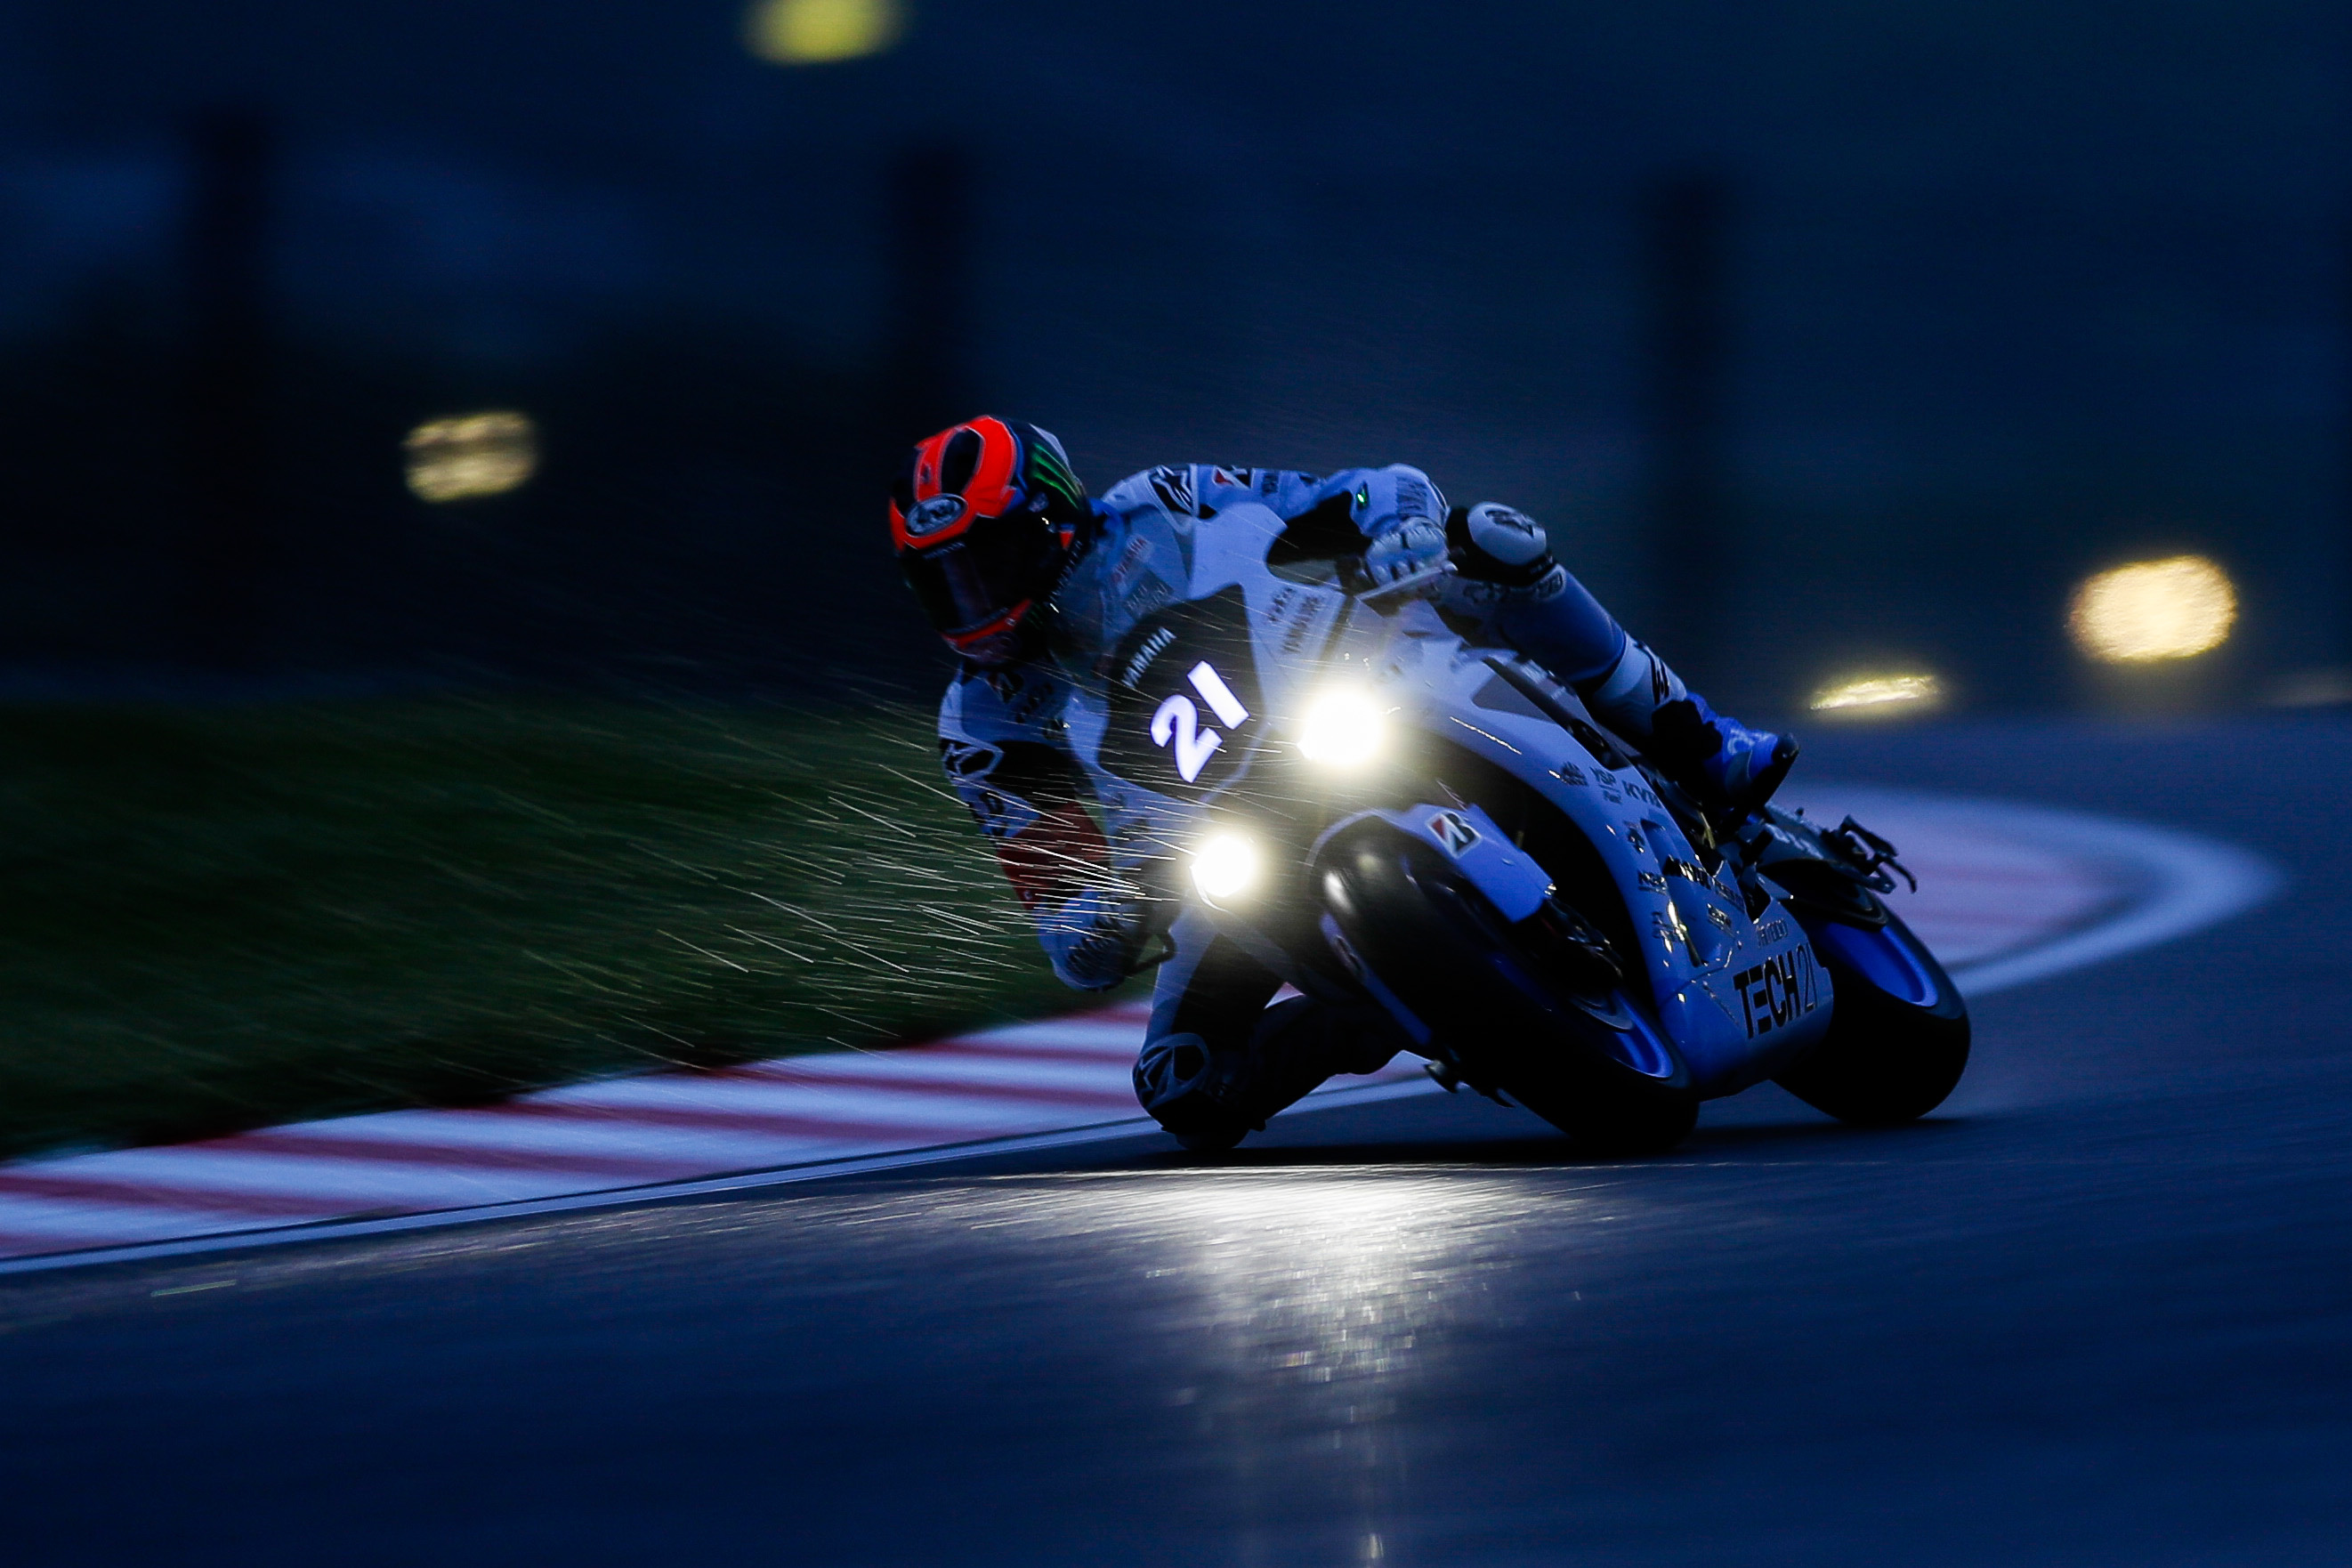 Racing in the dark 1